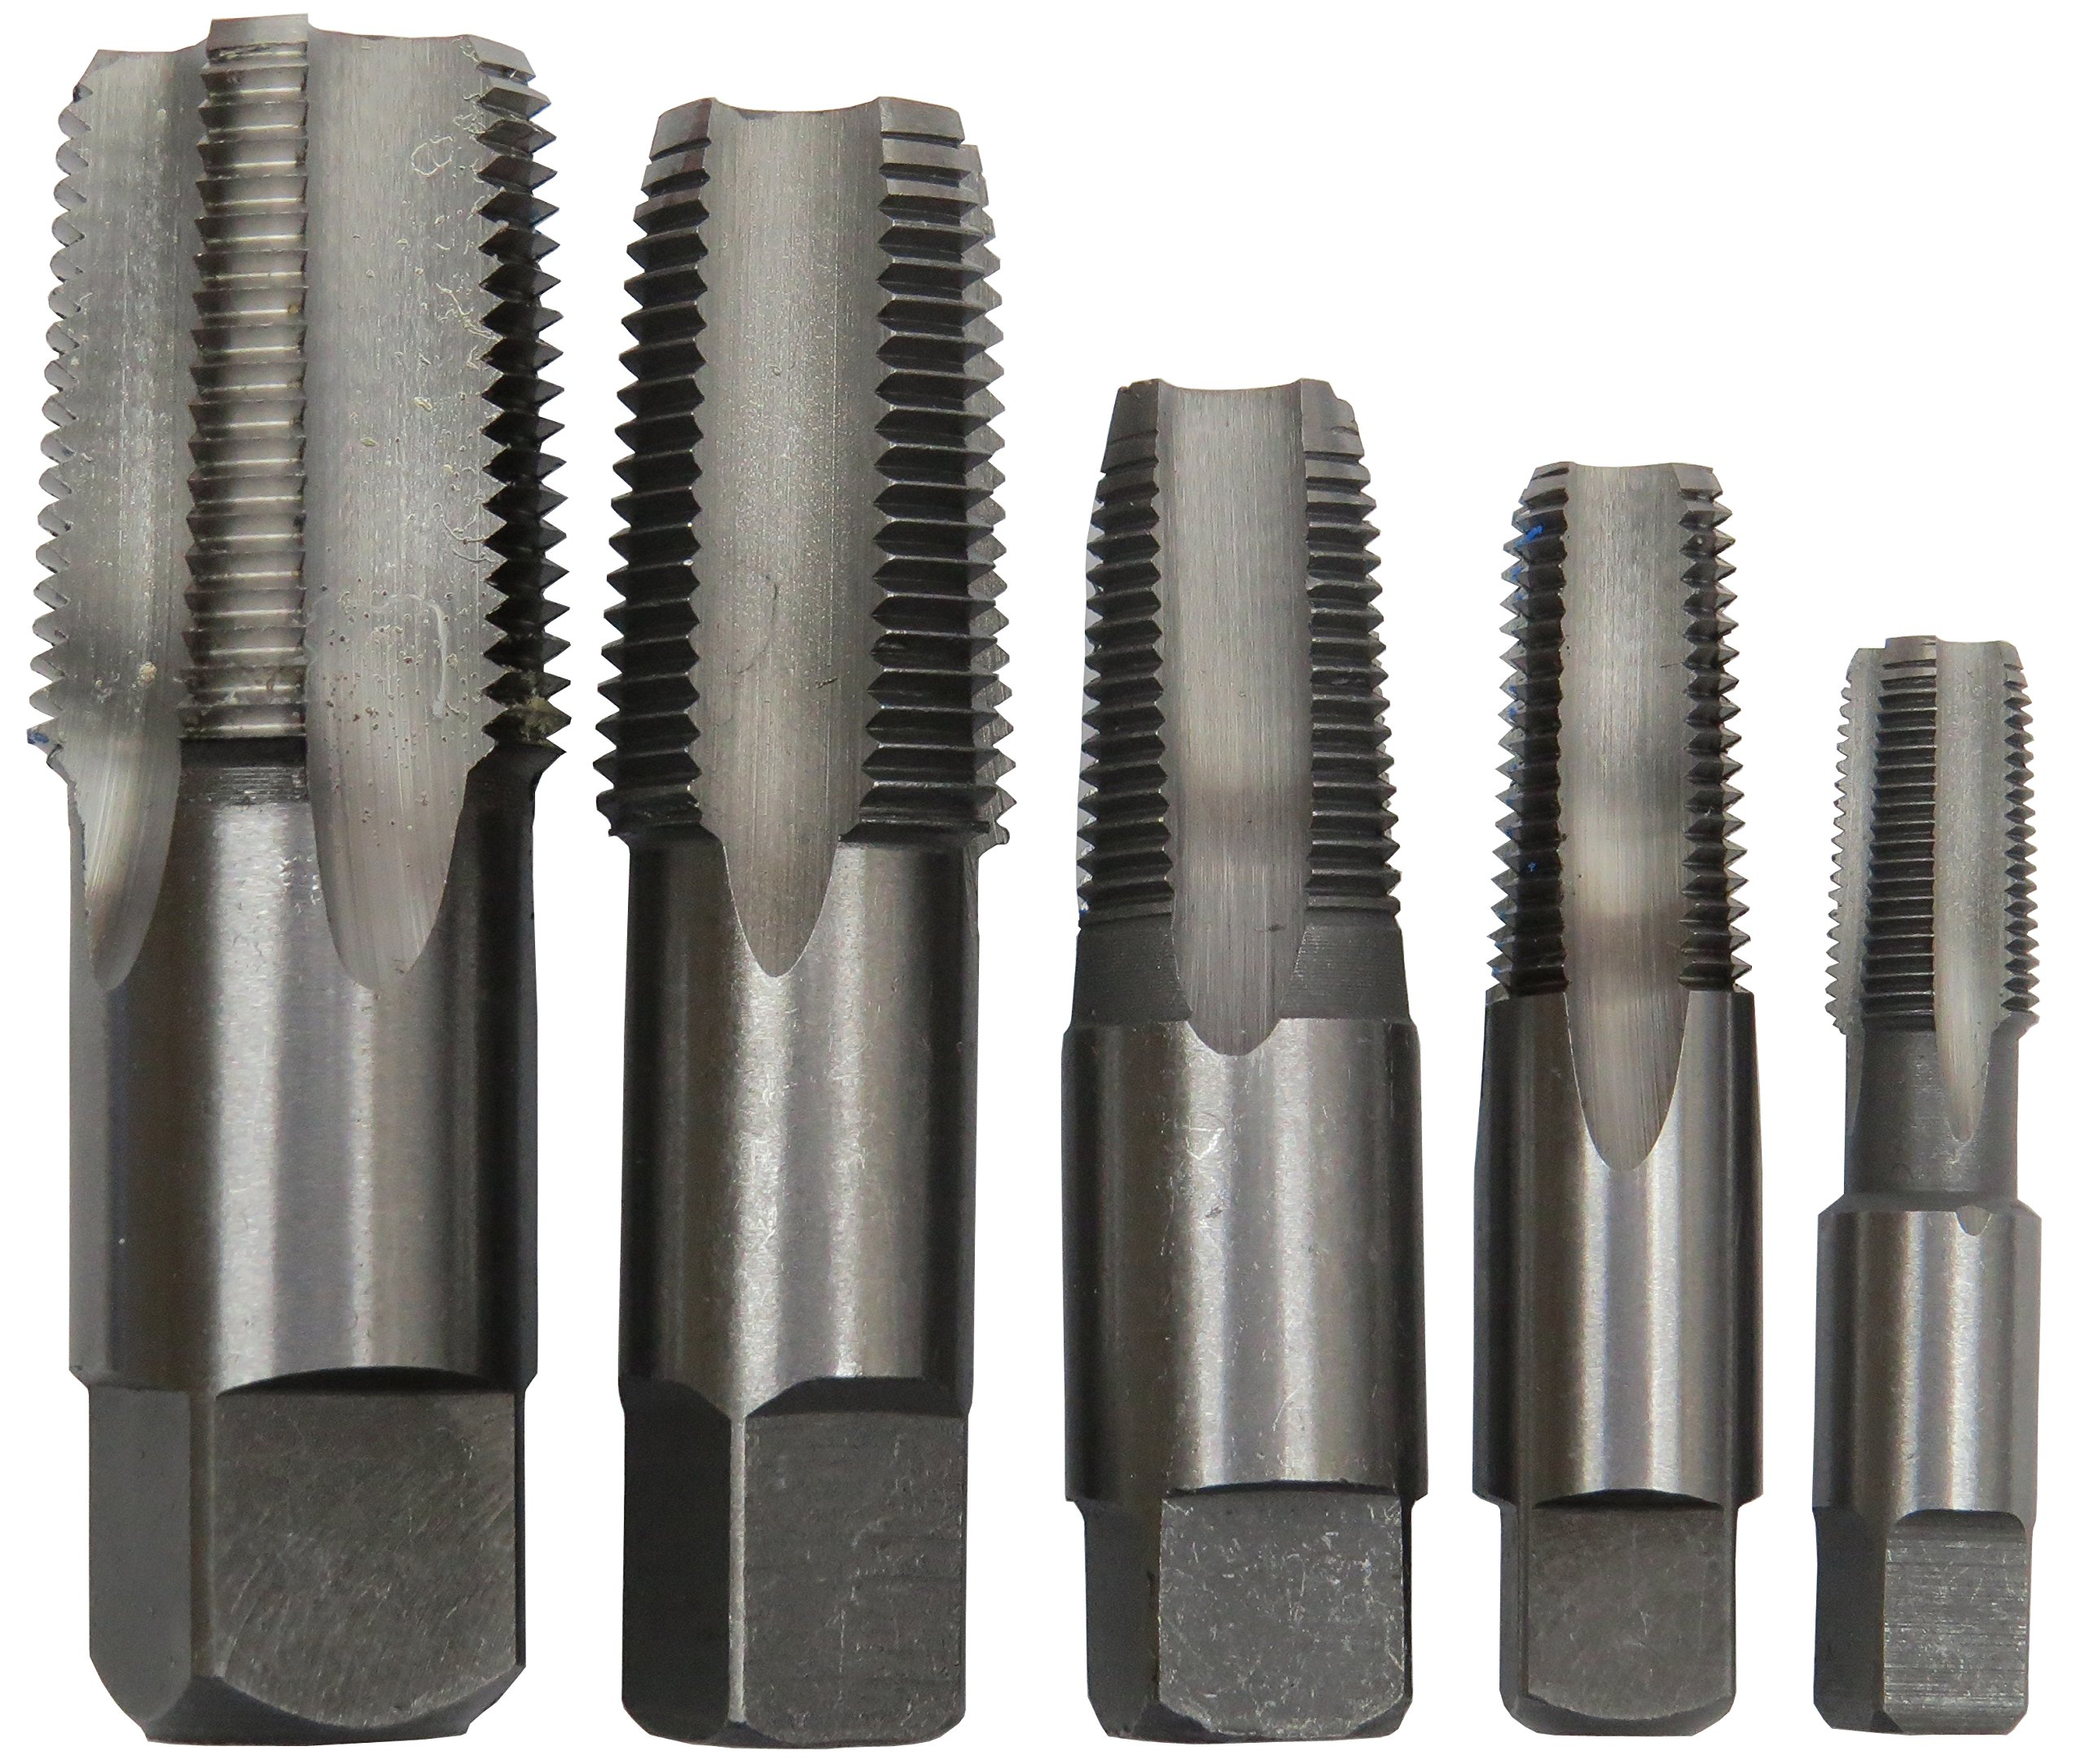 Drill America 5 Piece NPT Pipe Tap Set (1/8'', 1/4'', 3/8'', 1/2'' and 3/4''), Plastic Pouch Case, POU Series by Drill America